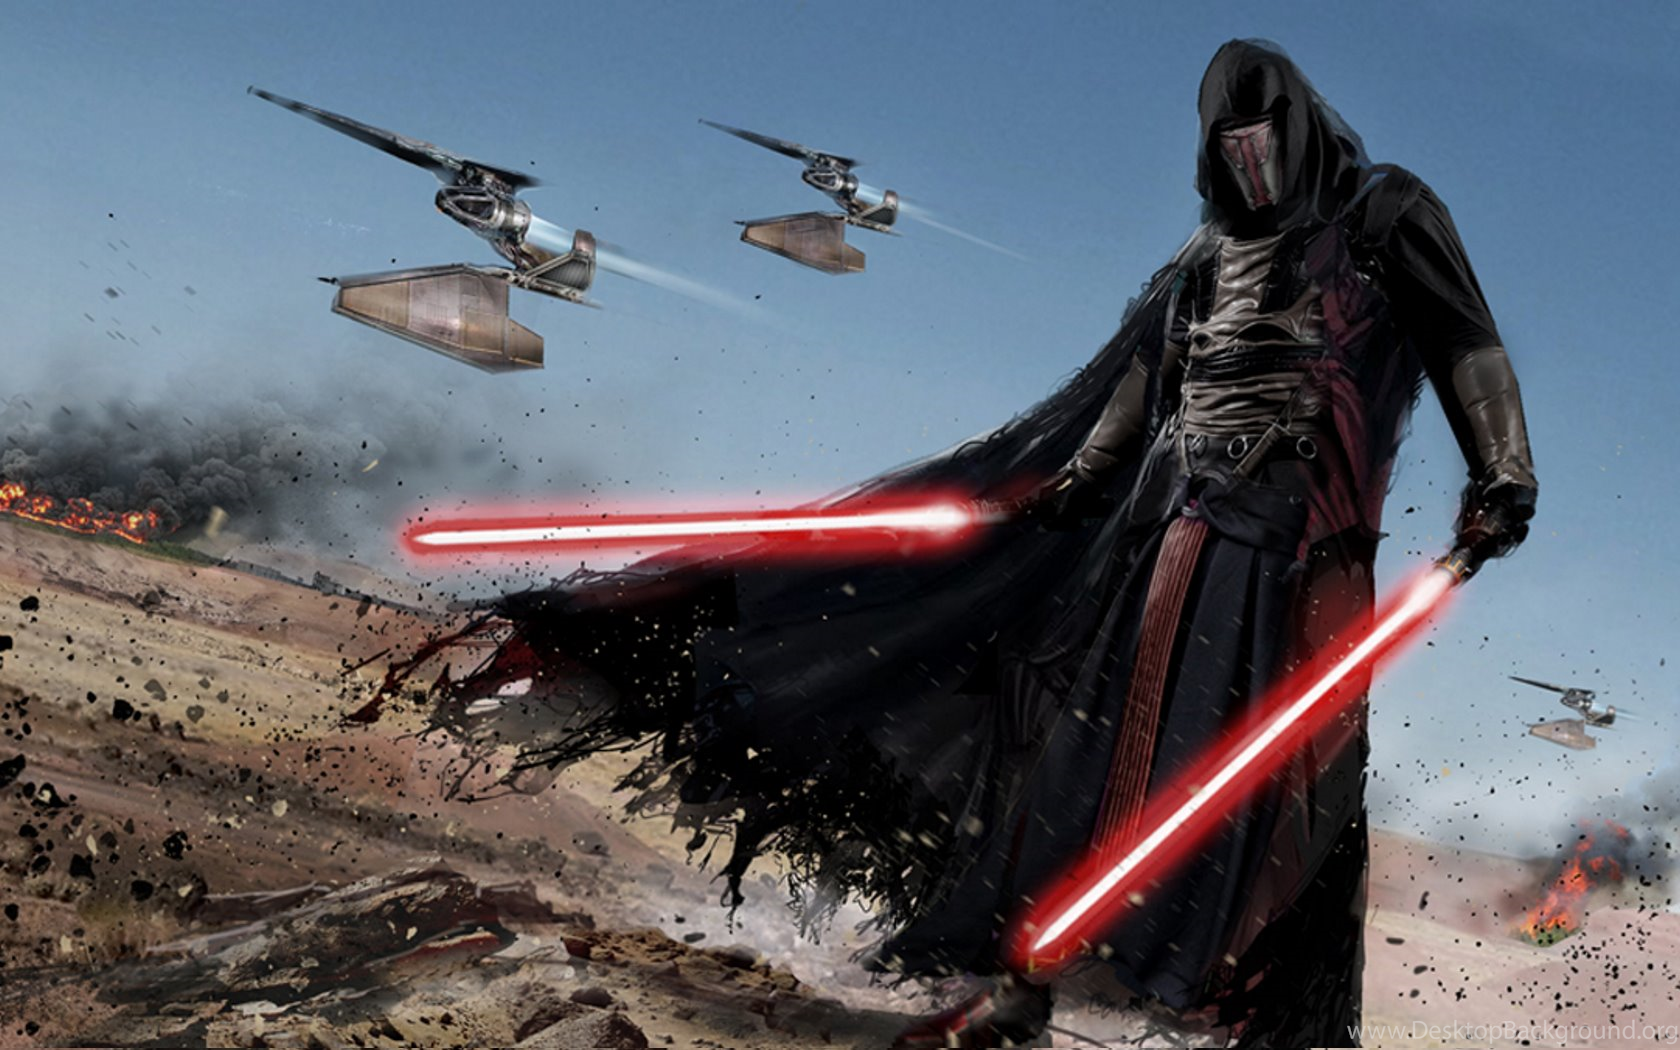 6 Star Wars Knights Of The Old Republic Hd Wallpapers Desktop